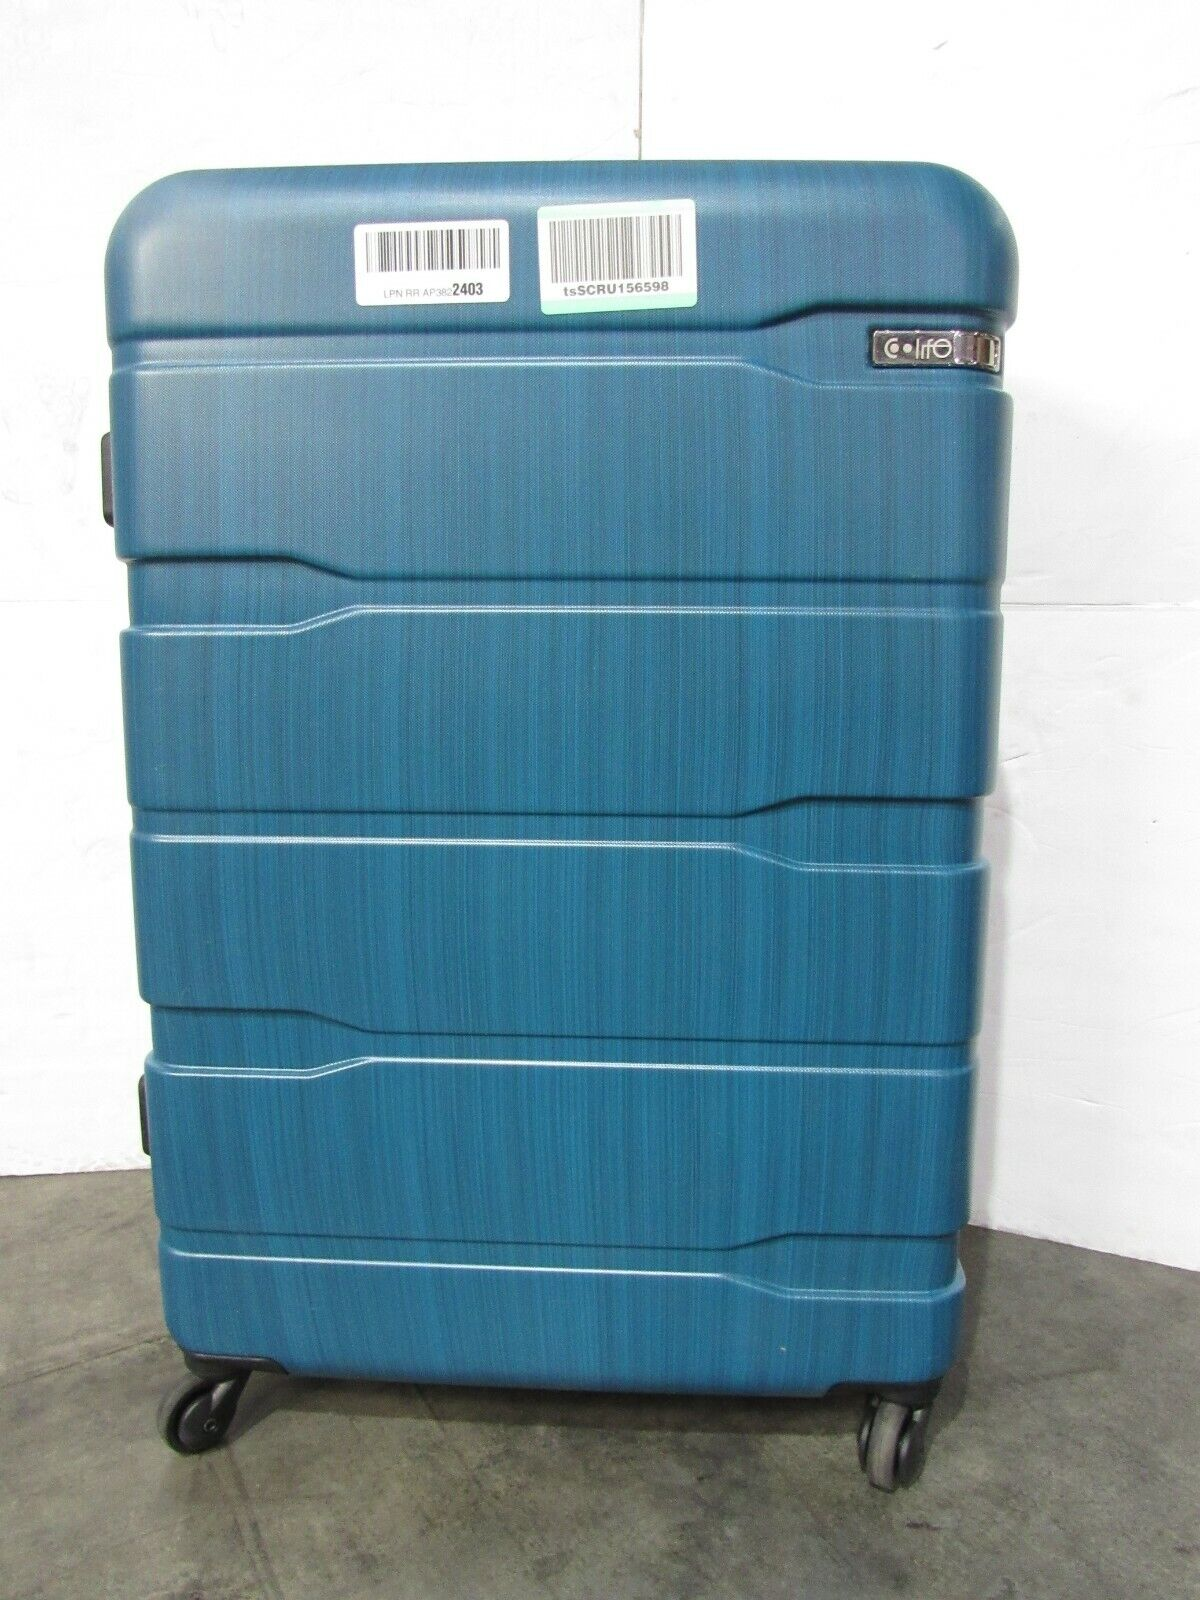 USED Coolife 1 Luggage Suitcase PC ABS Spinner Hard Plastic TSA Blue 28 A65 - $65.99